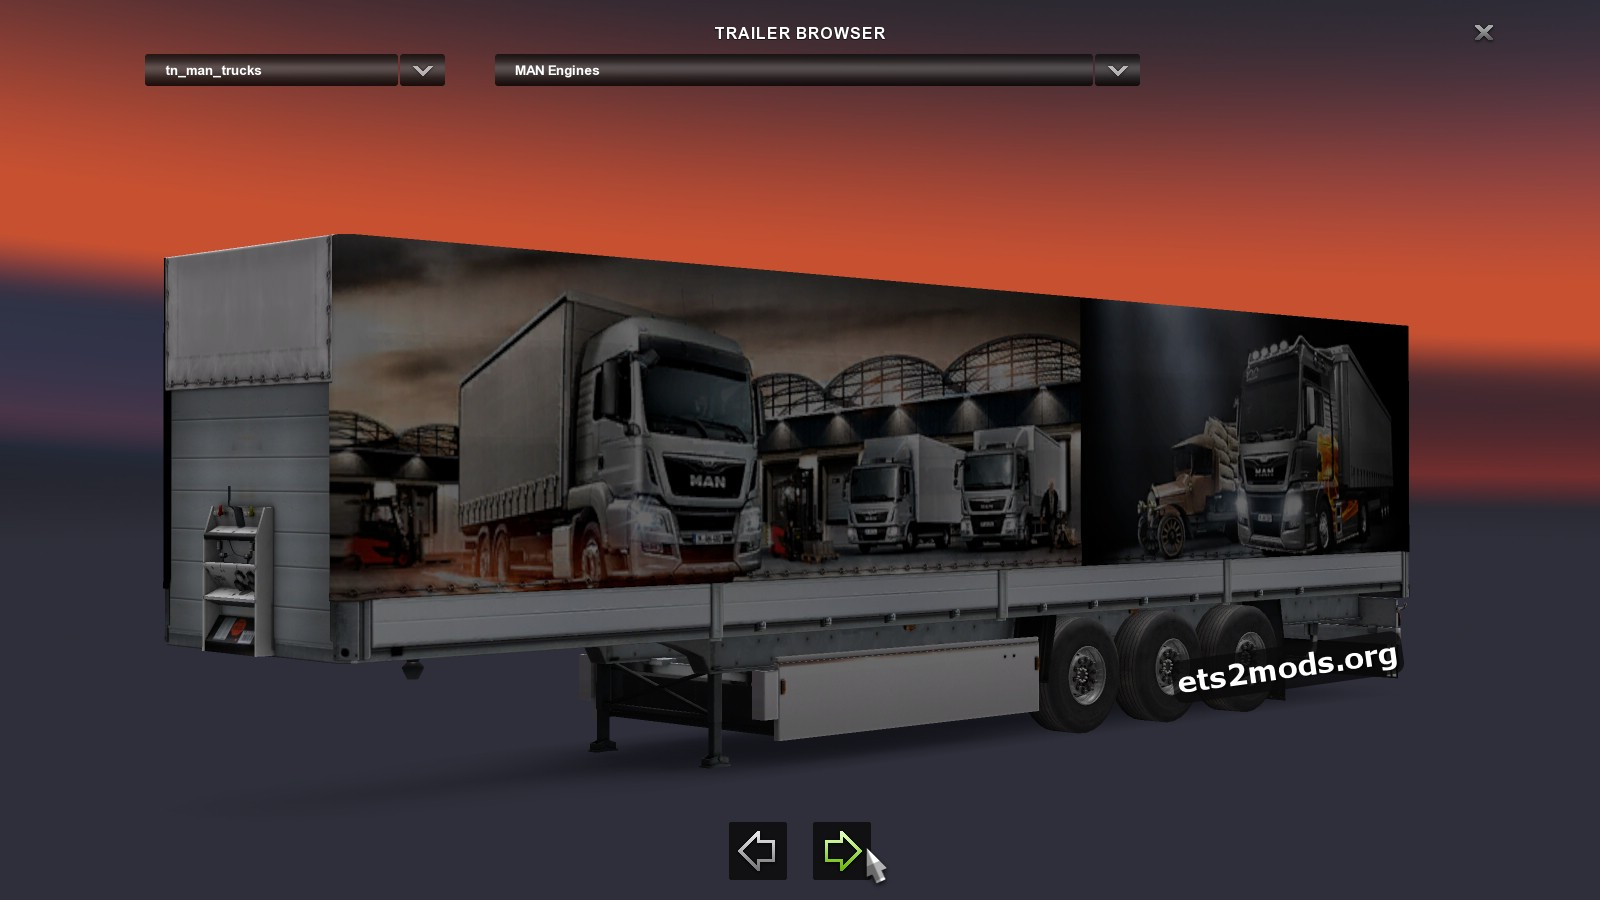 Standalone MAN Trucks Trailer